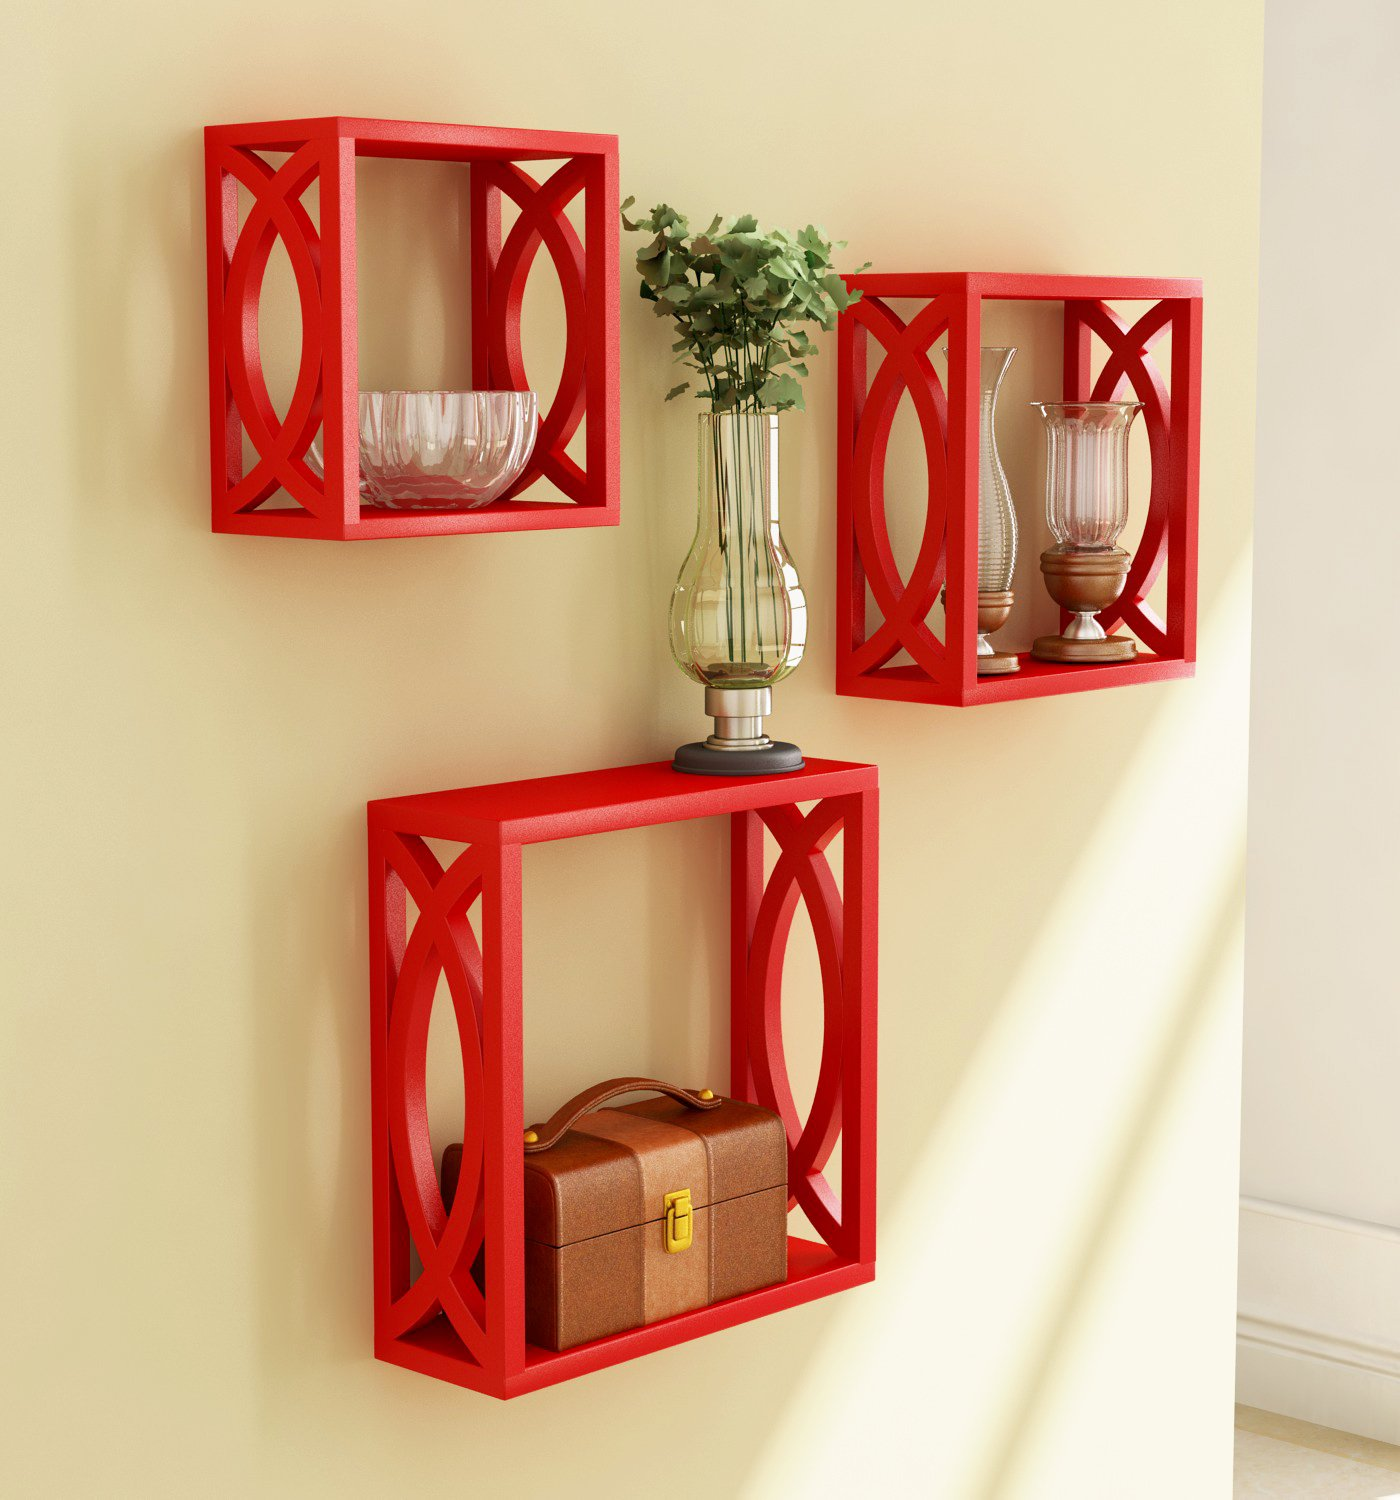 Home Sparkle Wooden Wall Shelf Cube Design Wall Mounted Shelves For Living Room Set Of 3 Red Amazon In Home Kitchen